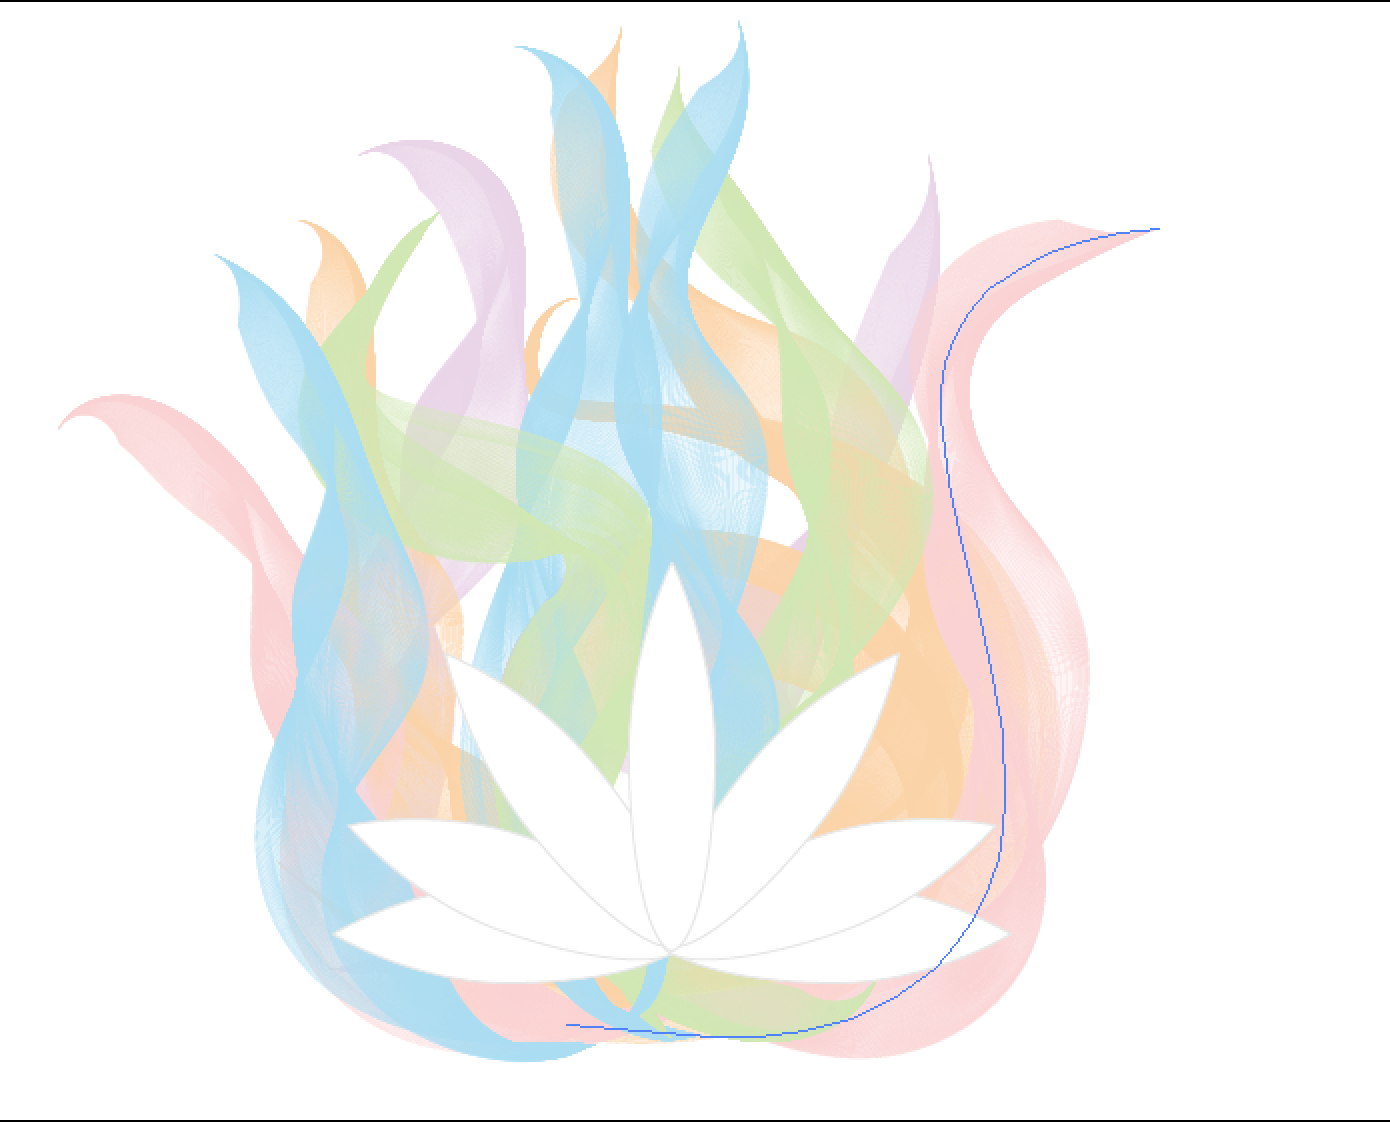 An attempt at making smoke like waves coloured according to briefs an attempt at making smoke like waves coloured according to briefs preferred ones and with a simple lotus in front design brief project izmirmasajfo